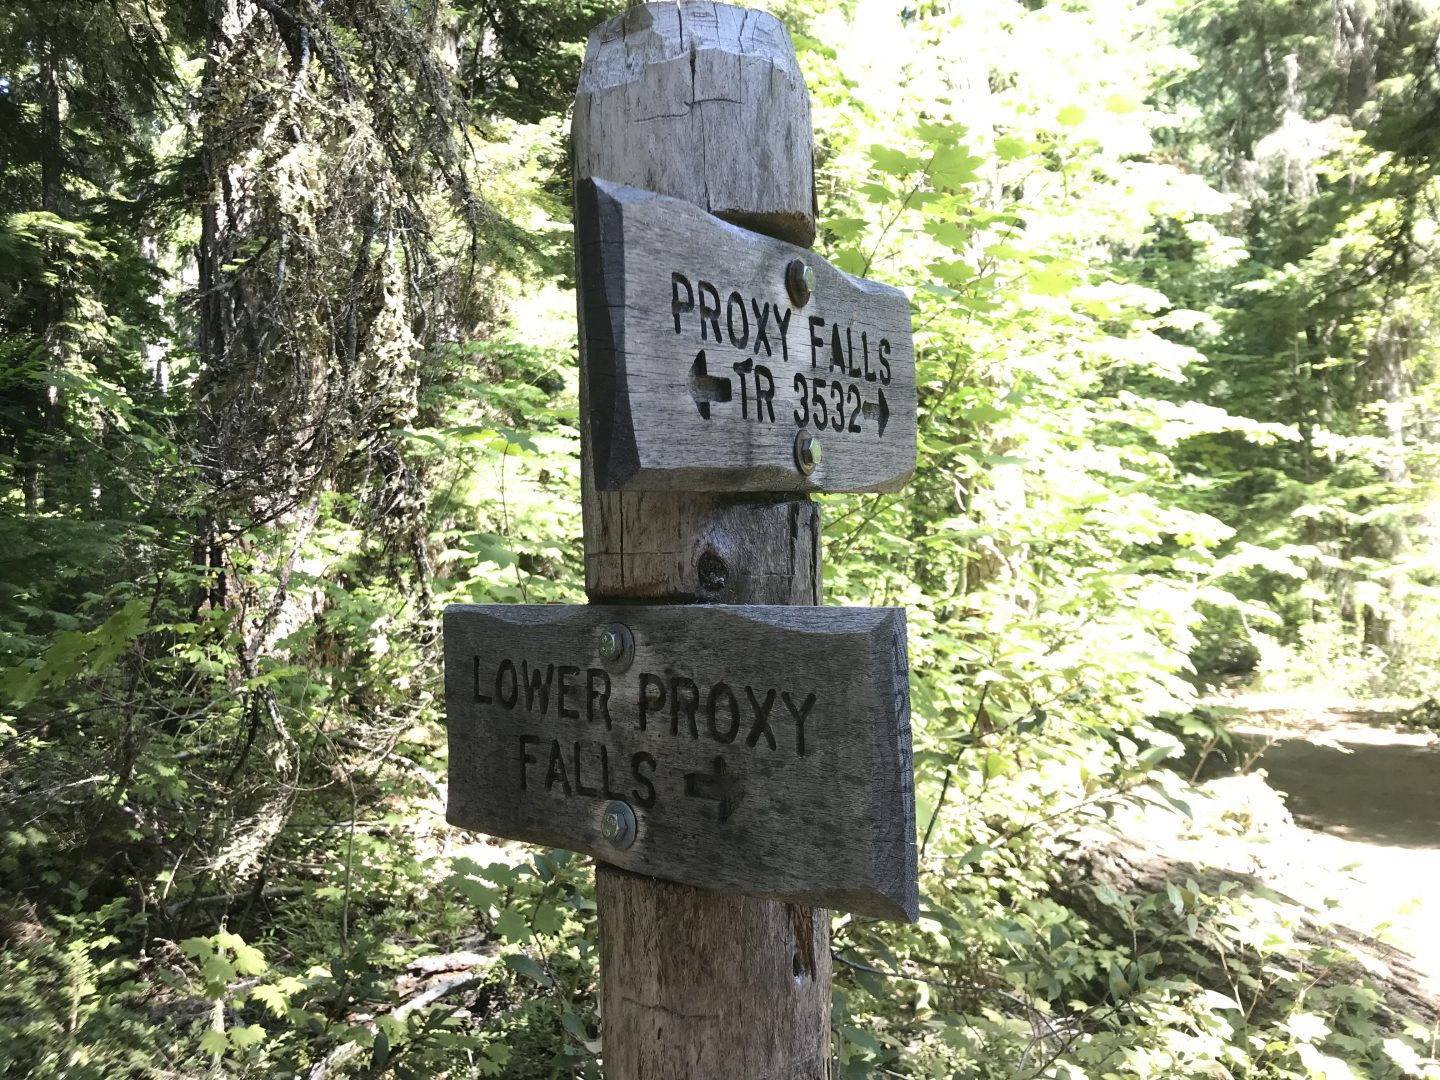 Take the right path to lower proxy falls, take the left path to the upper falls